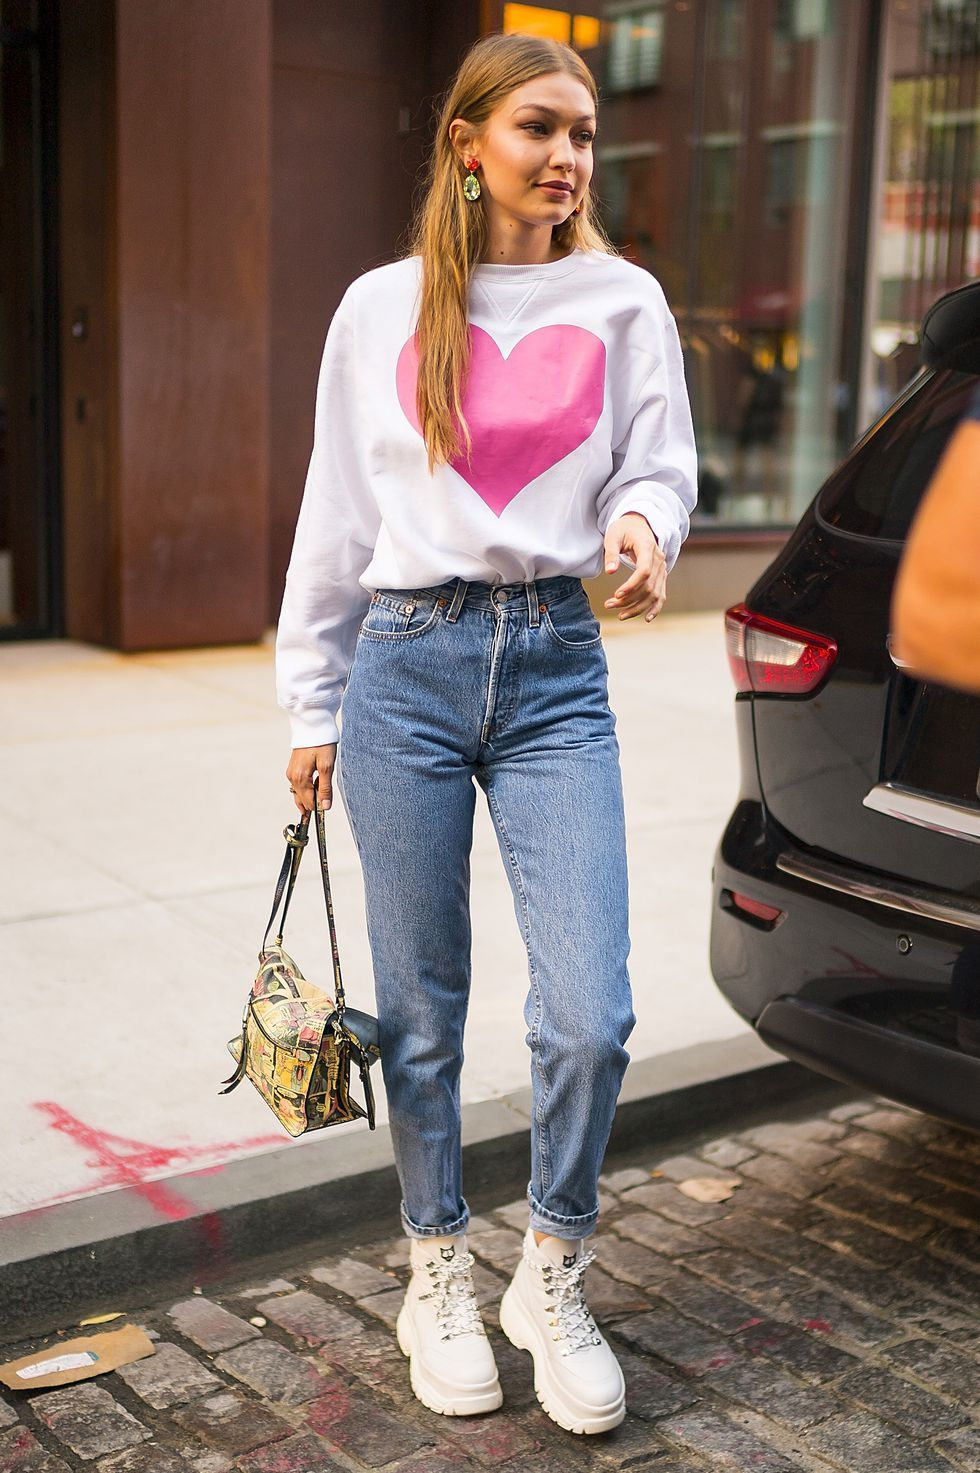 6245e1fcb7 10 Flawless College Outfit Ideas That Will Slay Your First Day on ...